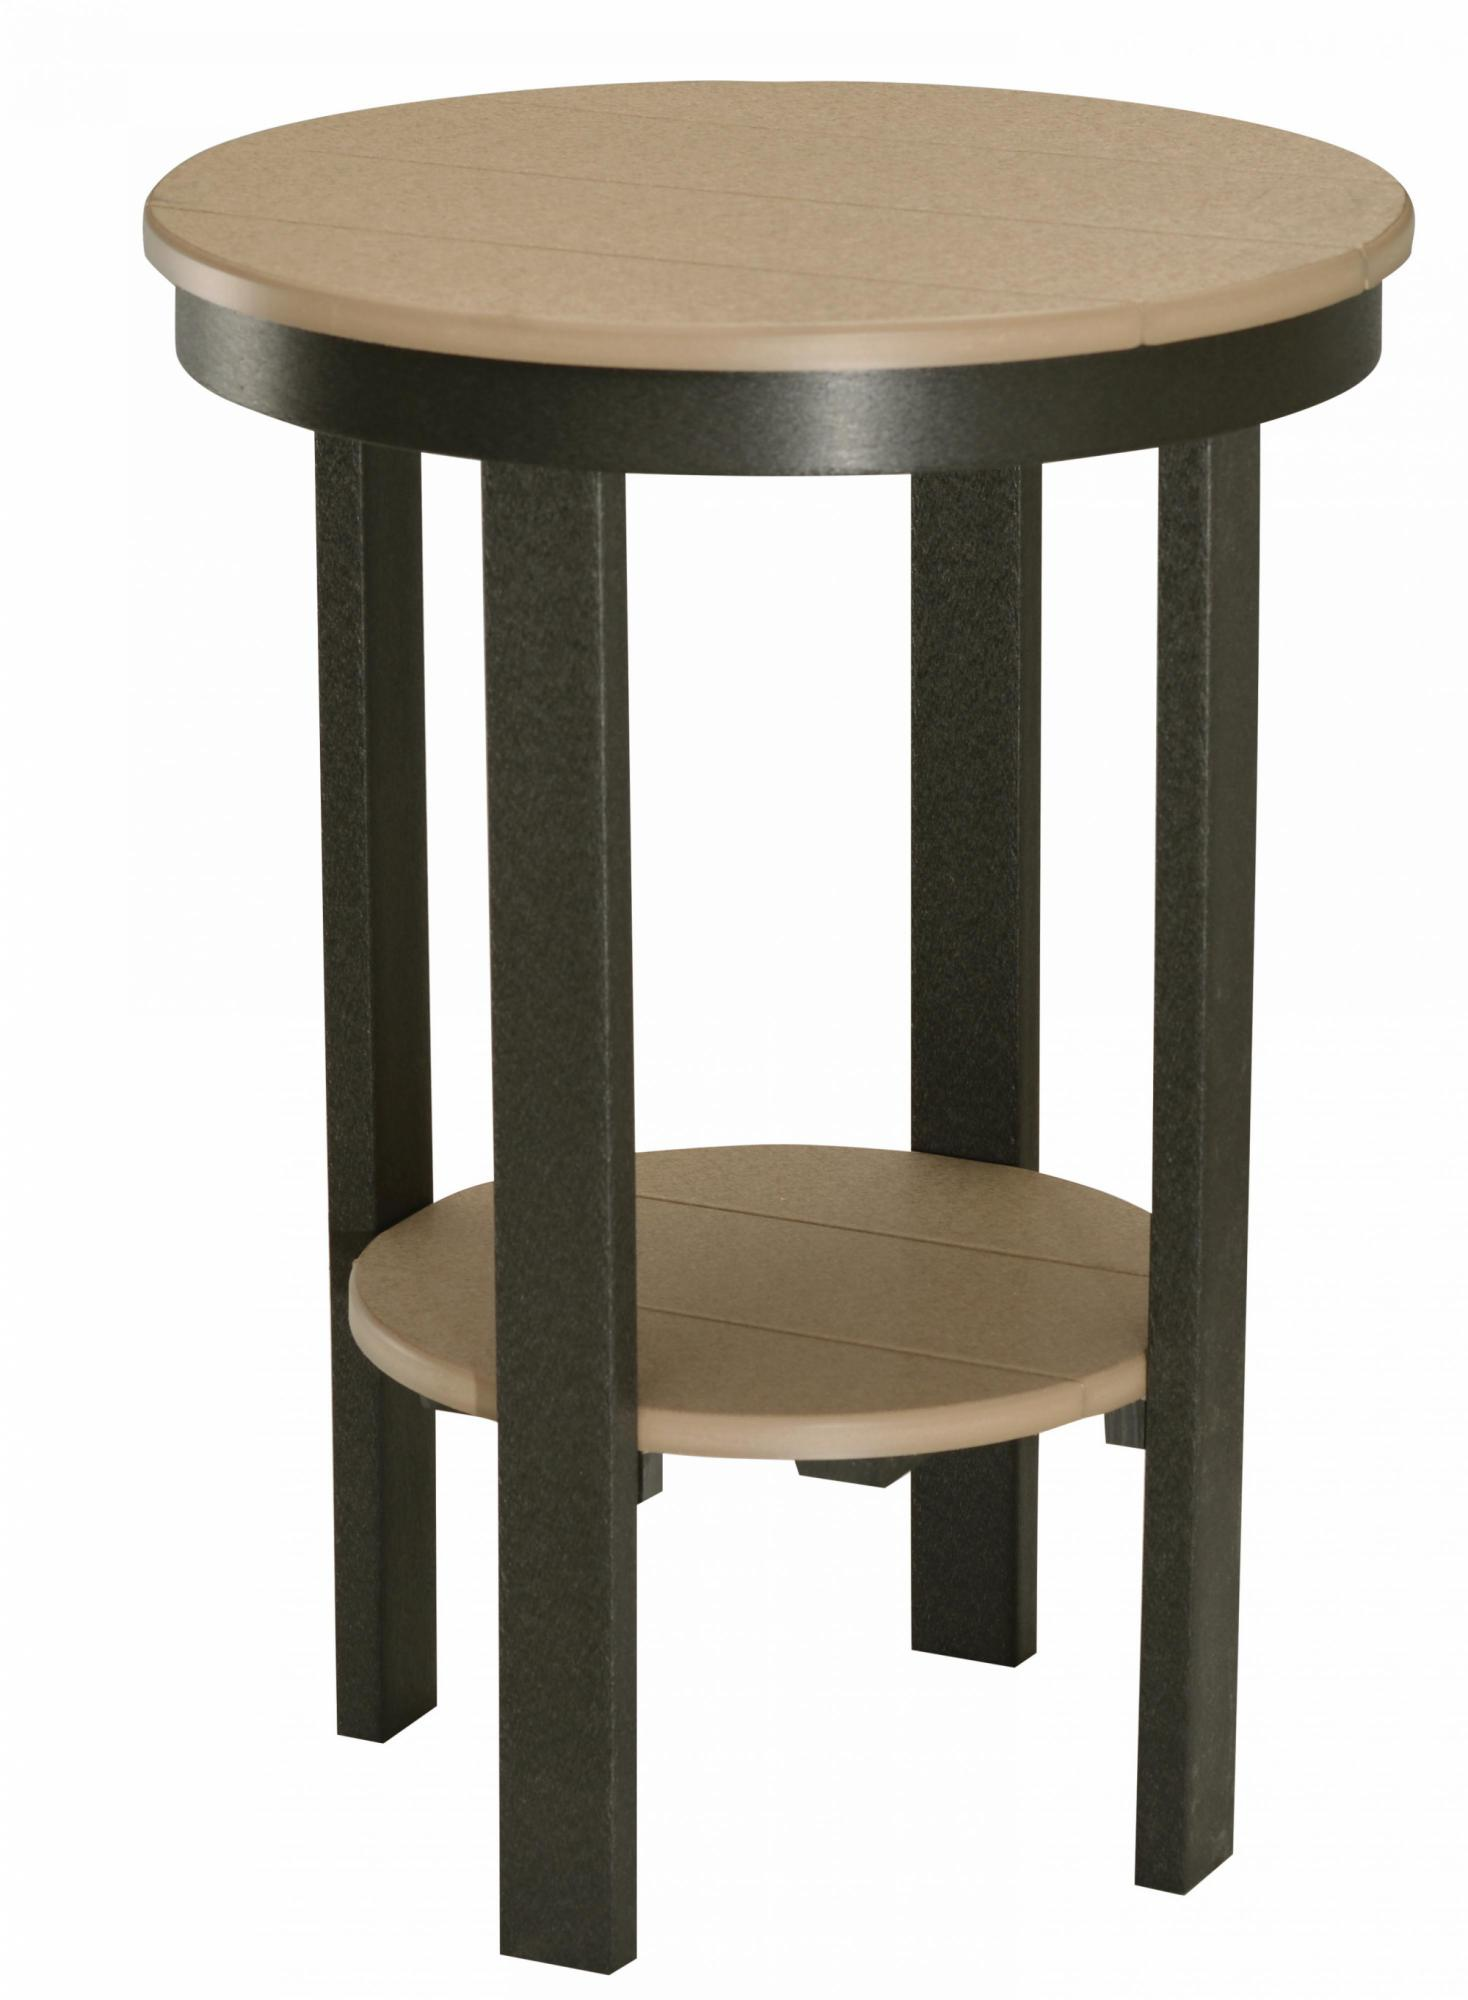 Round End Table (Bar Height)